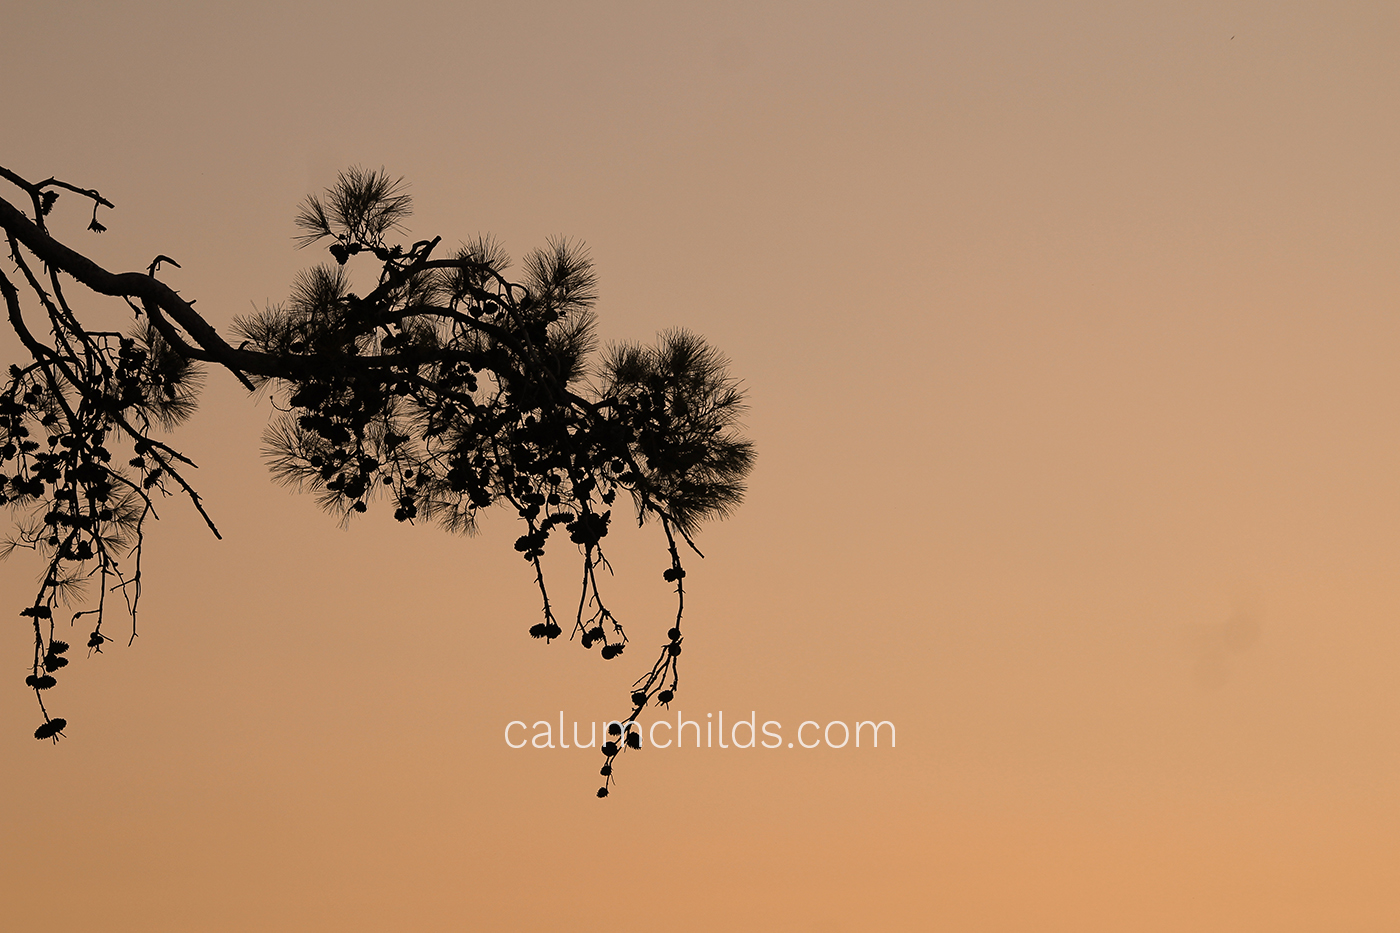 A branch of a pine tree with an orange-red sky behind it.